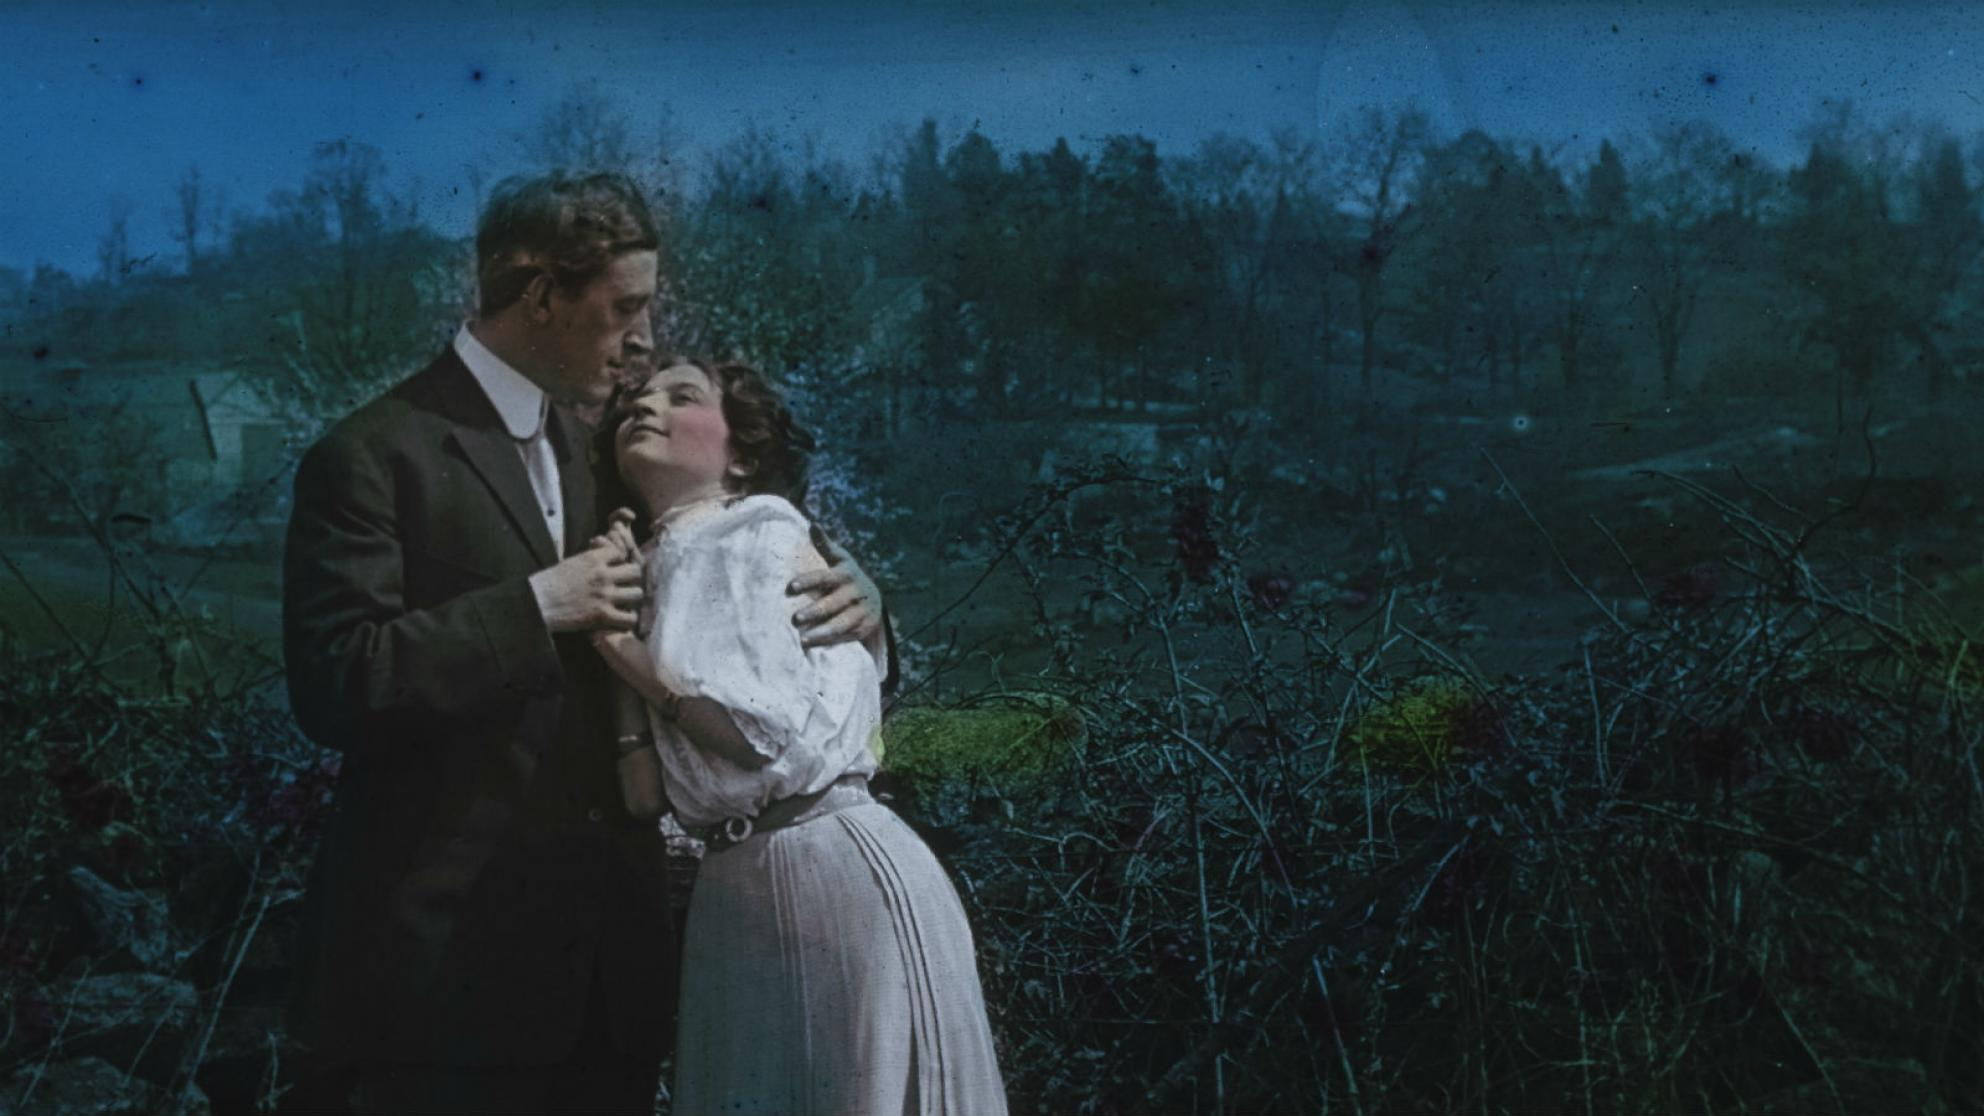 Glass slide image of a man and woman in an embrace standing in the moonlight, circa 1906.